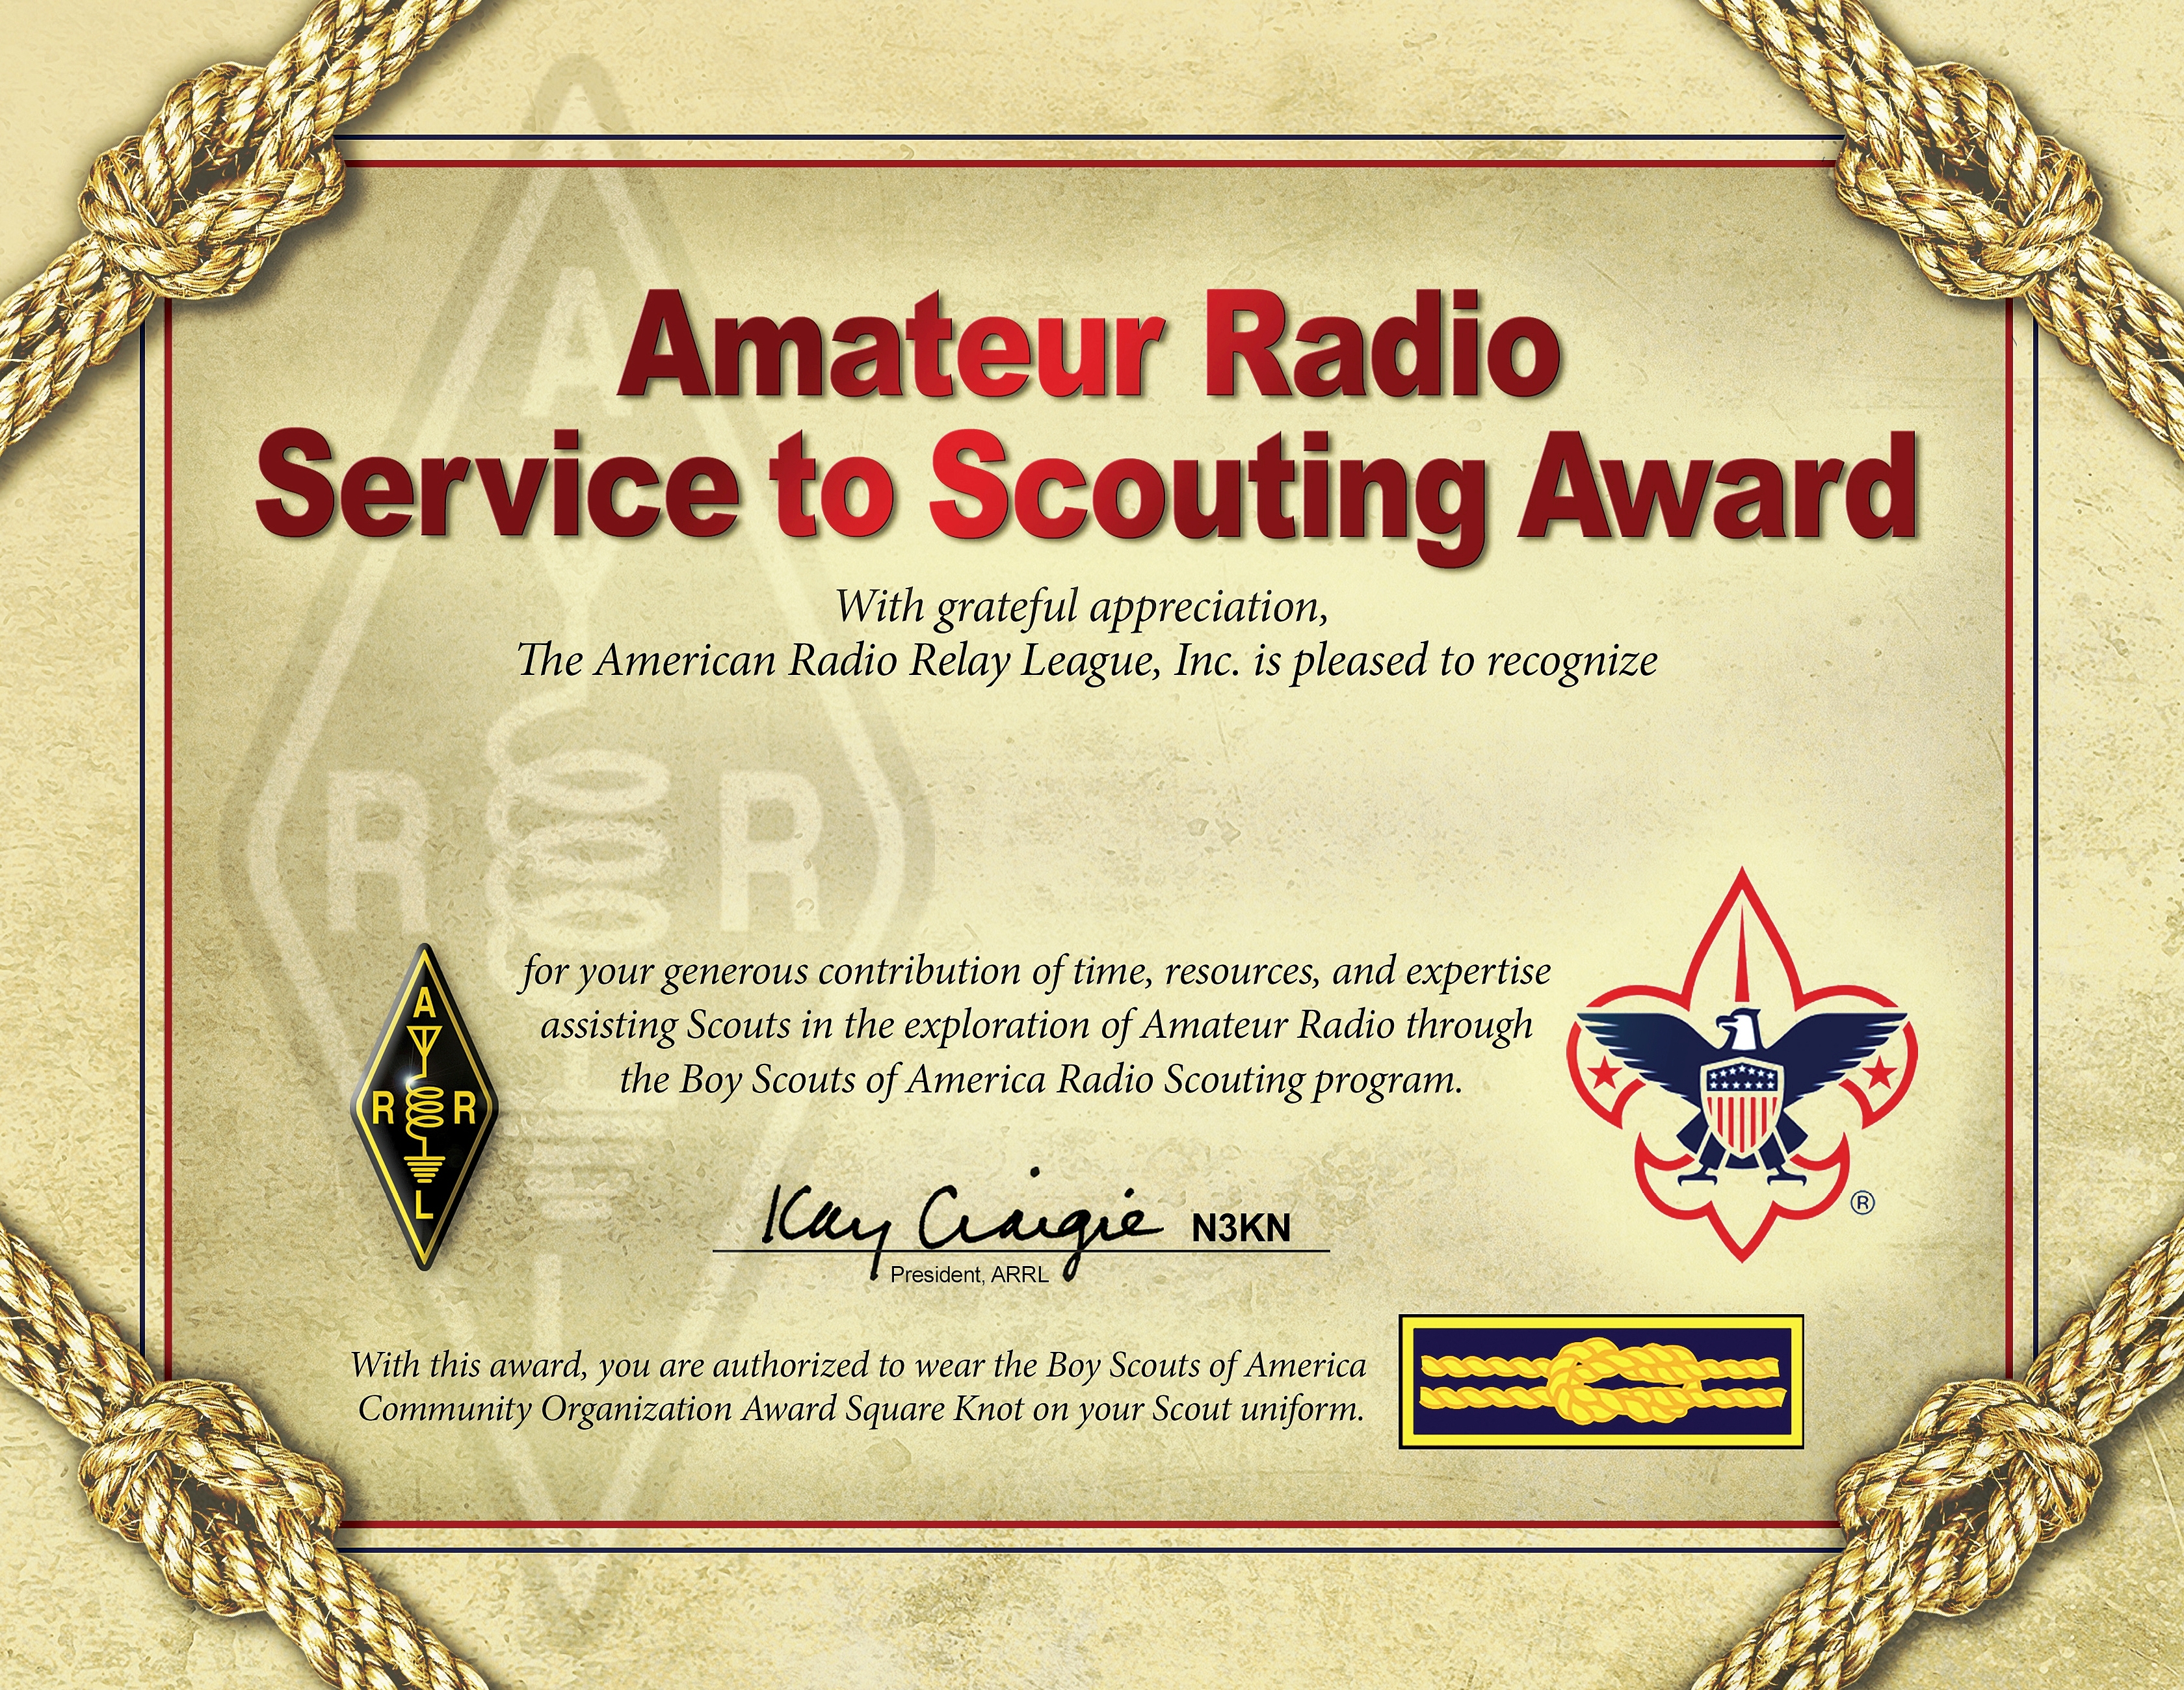 Arrl Recognizing Amateur Radio Service To Scouting Award Winners